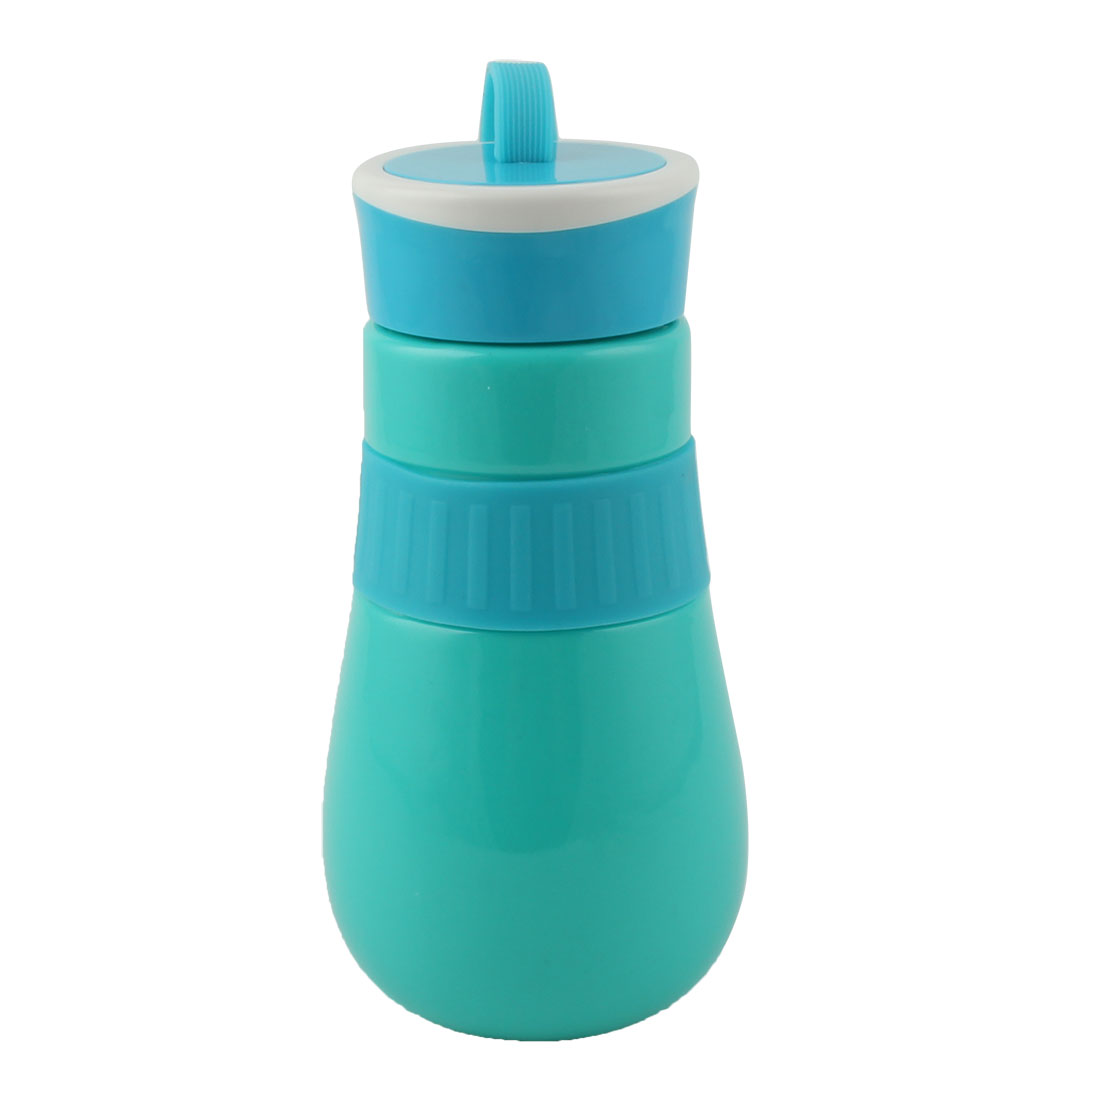 Student Travel Plastic Portable Water Tea Drinking Bottle Mug Sports Hiking Cup Blue 410ml